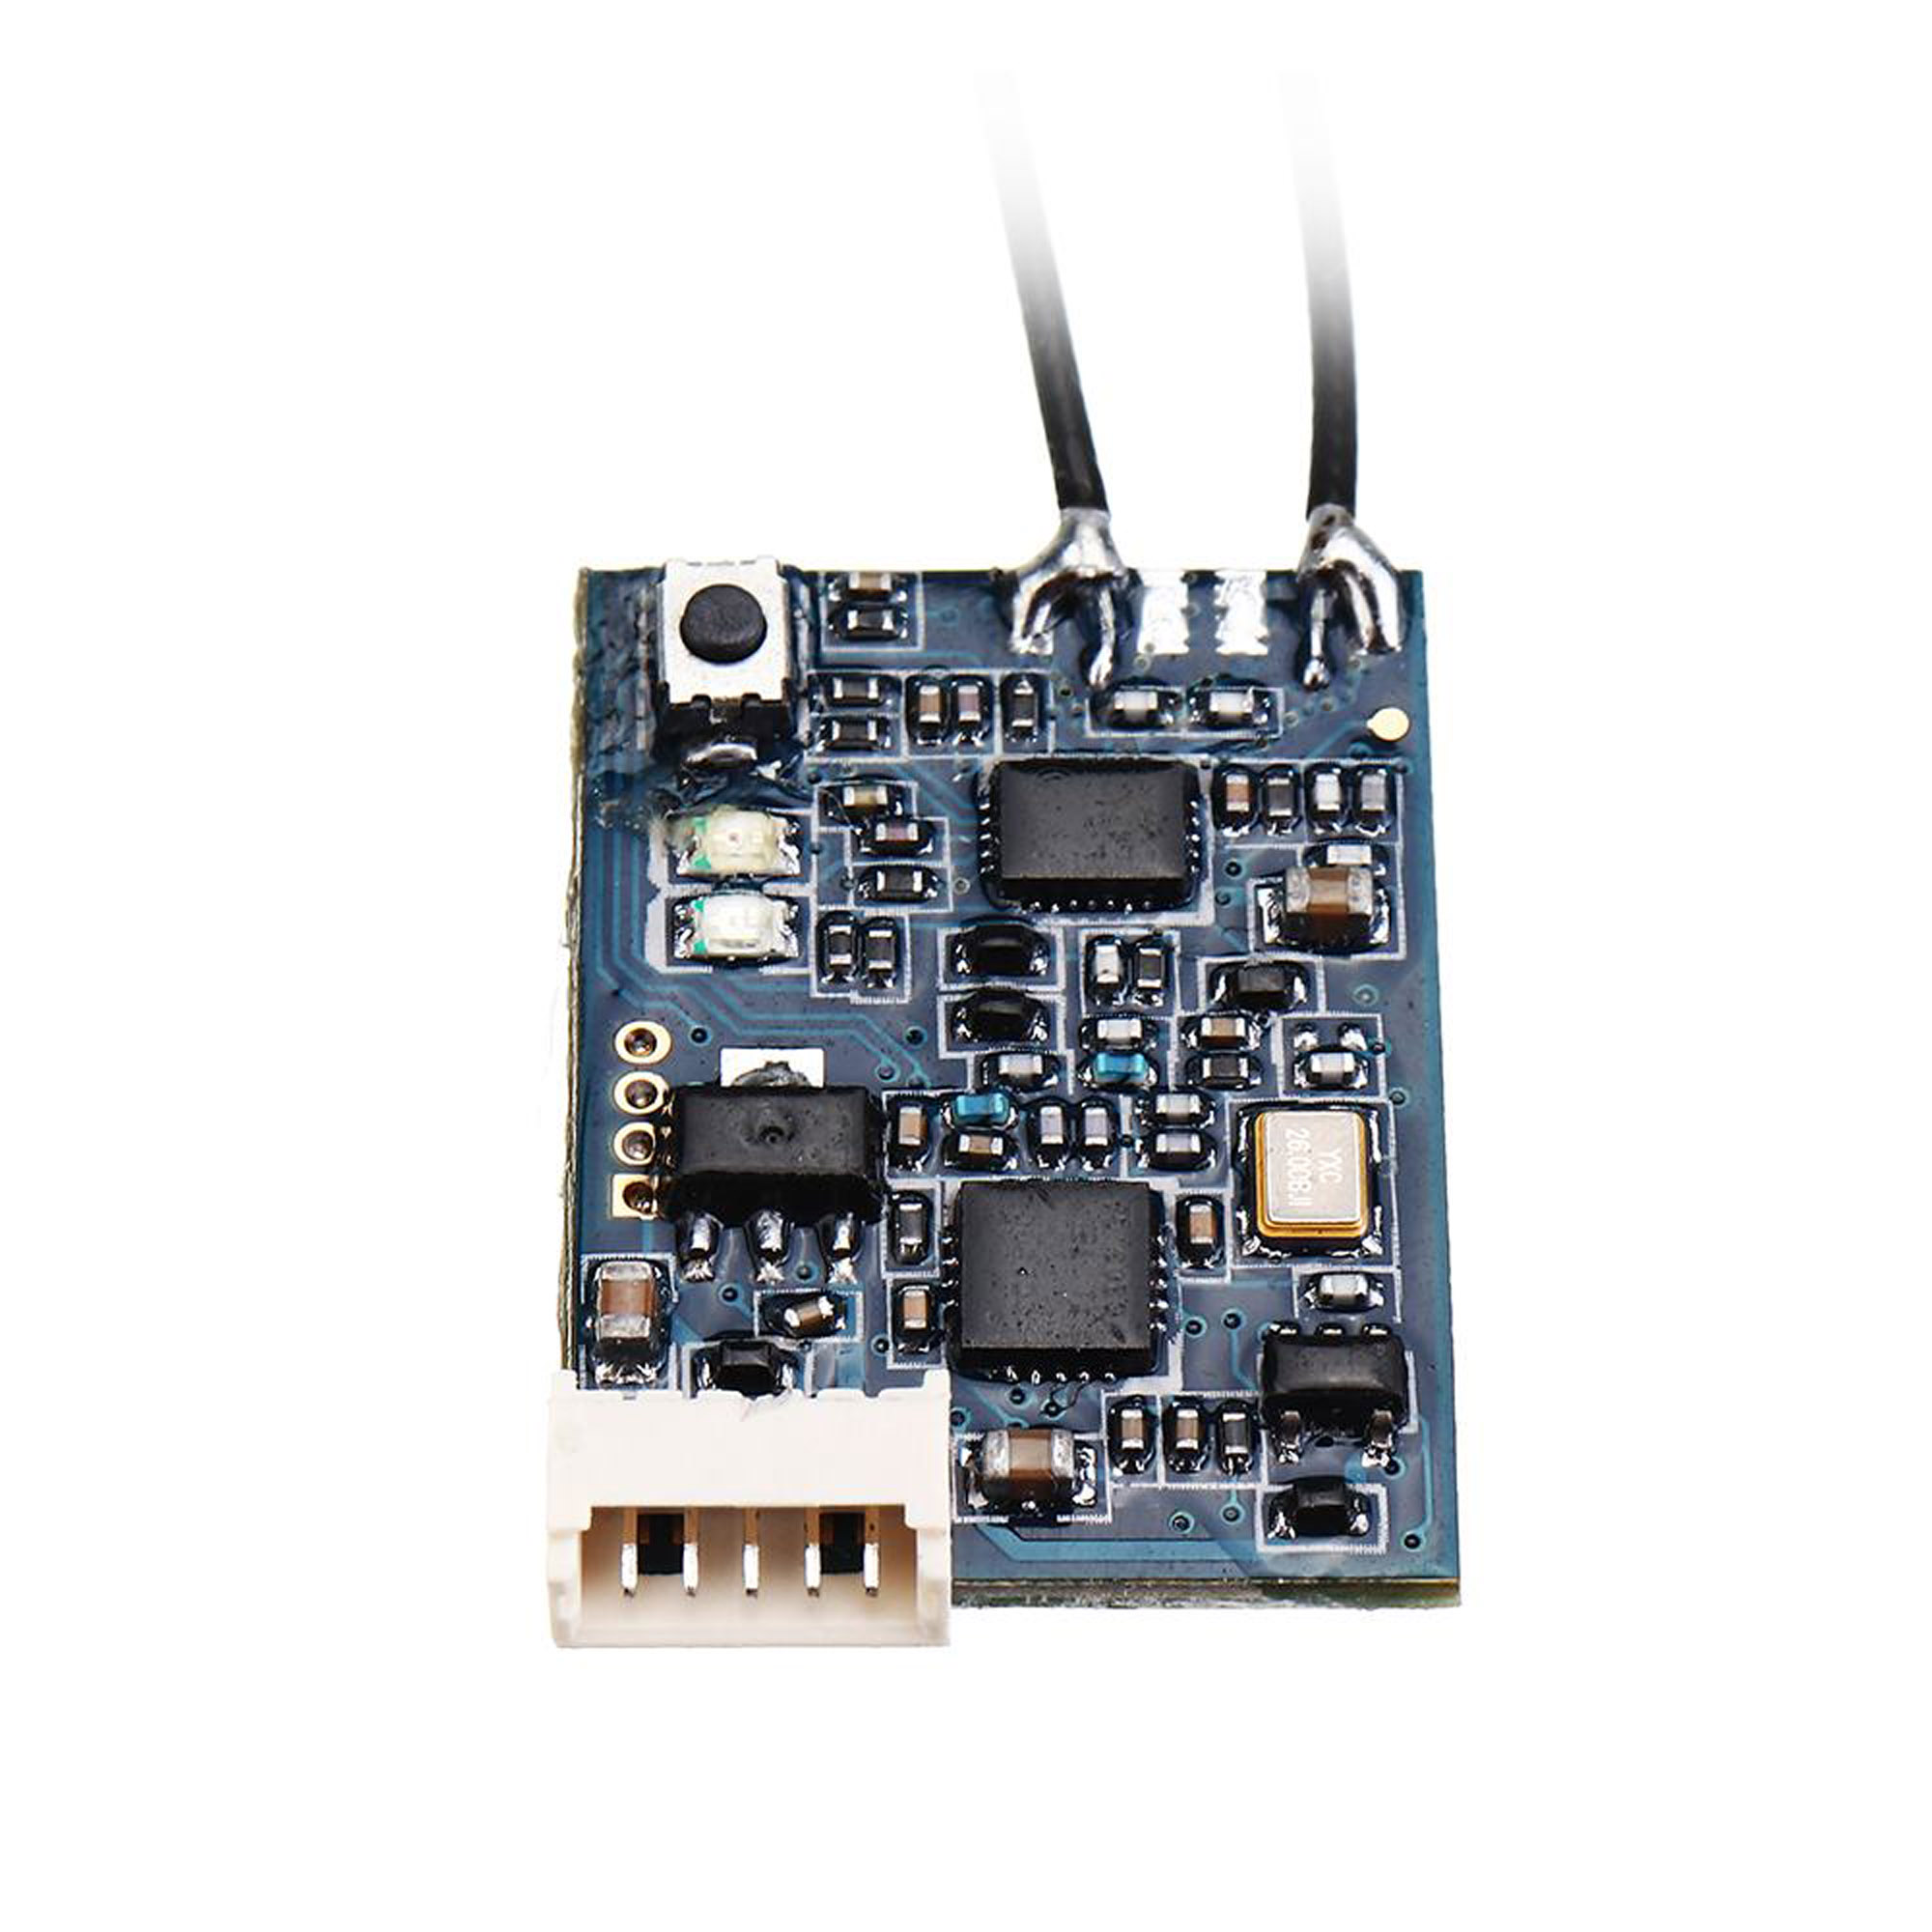 FrSky XSR 2.4GHz 16CH ACCST Receiver QAV w// S-Bus /& CPPM Particular B2AE